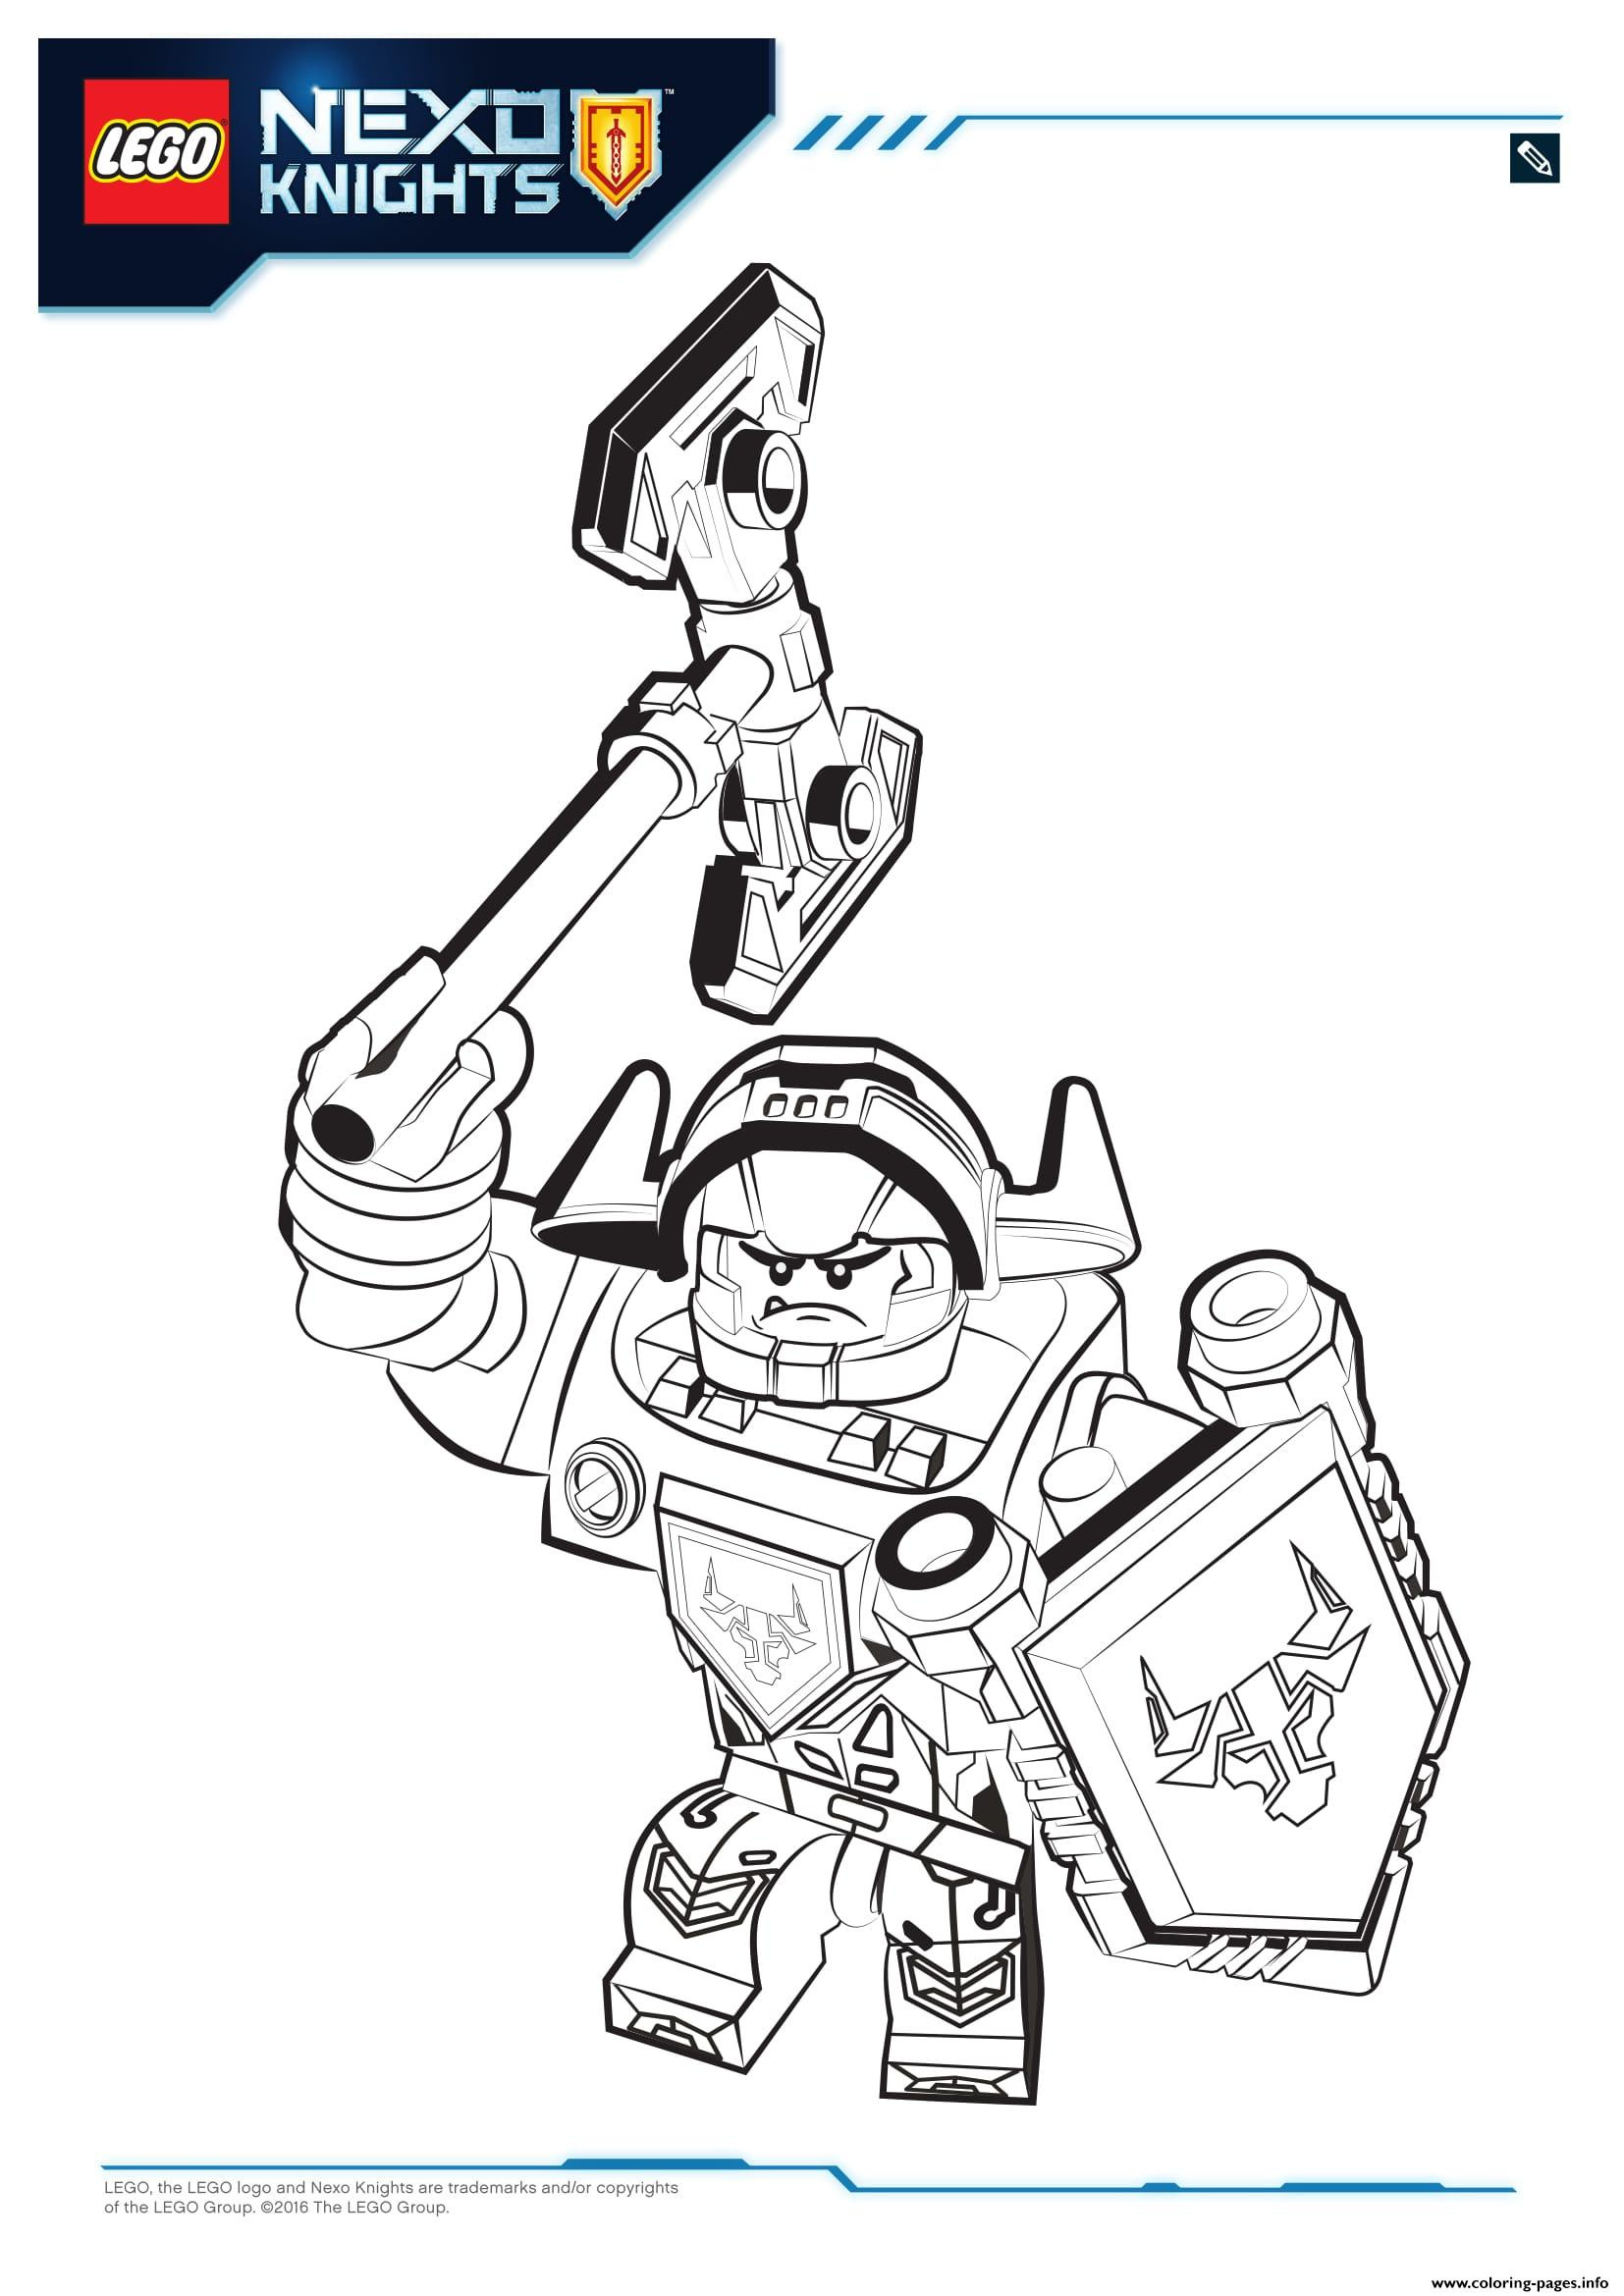 Nexo Knight Coloring Pages Lego Nexo Knights Coloring Pages Free